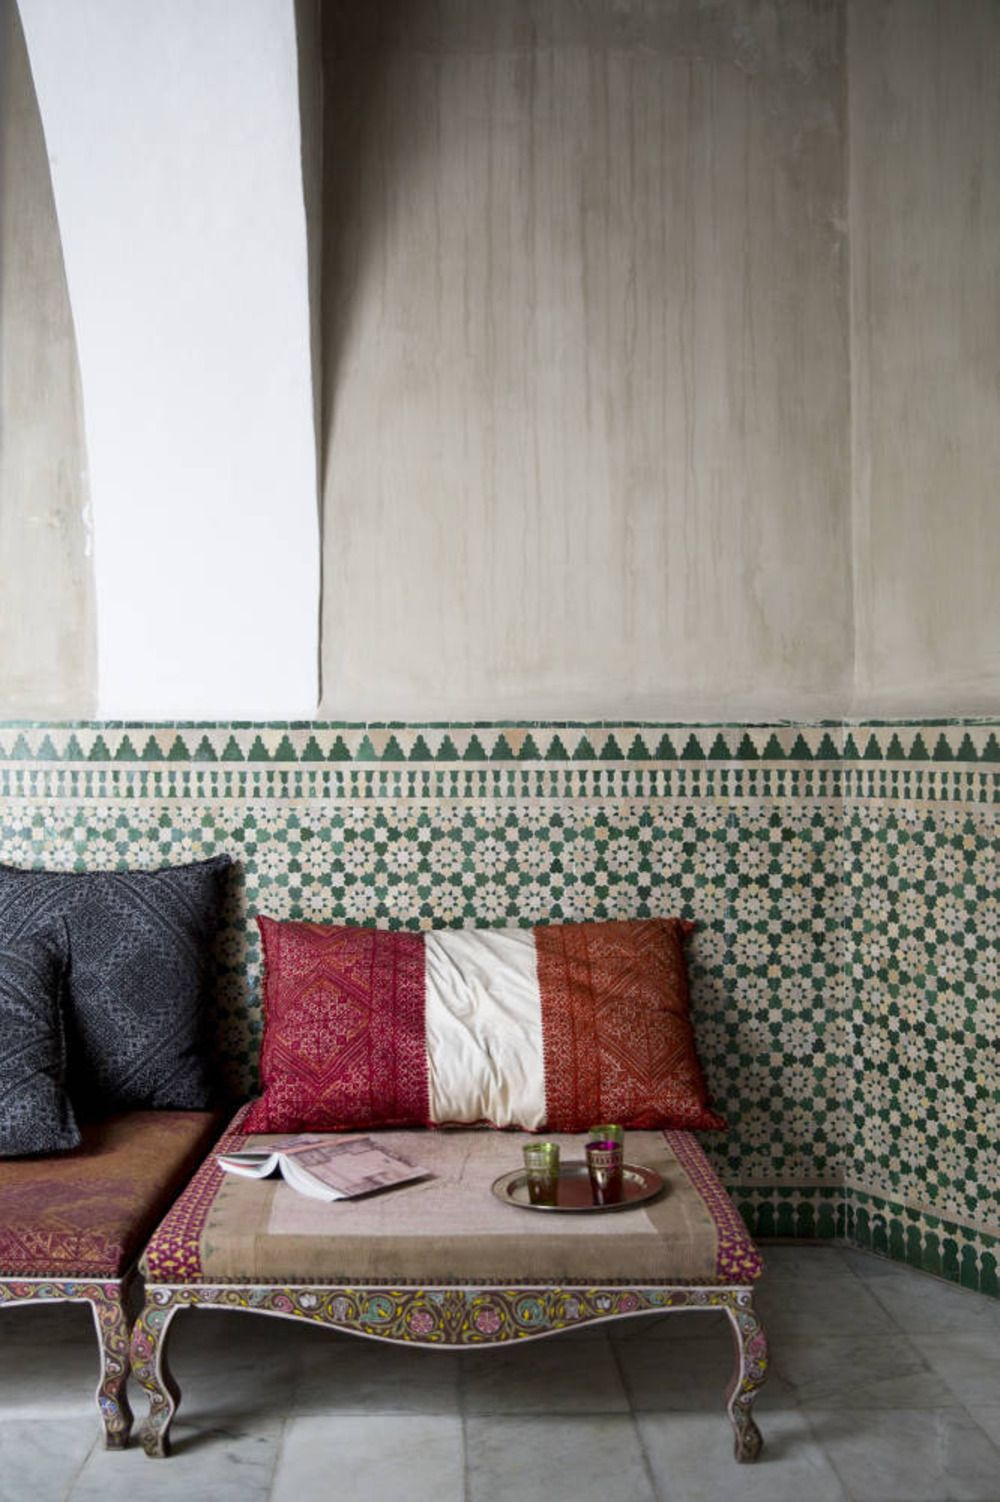 tangier morocco inspiration pinterest moroccan home and morocco rh pinterest com